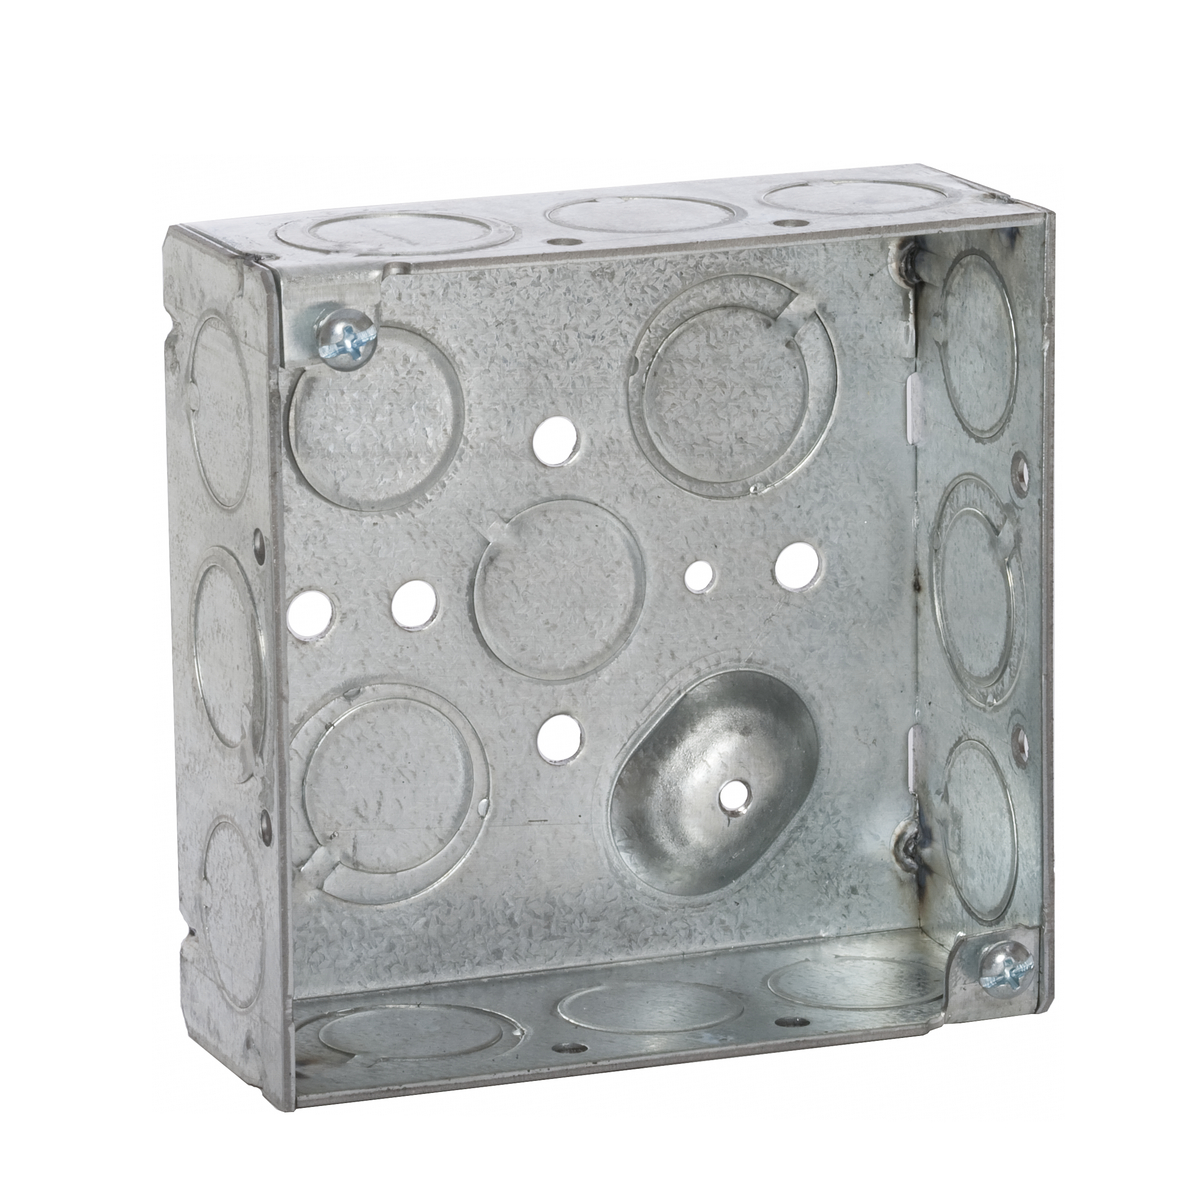 Hubbell-Raco 189 Square Box